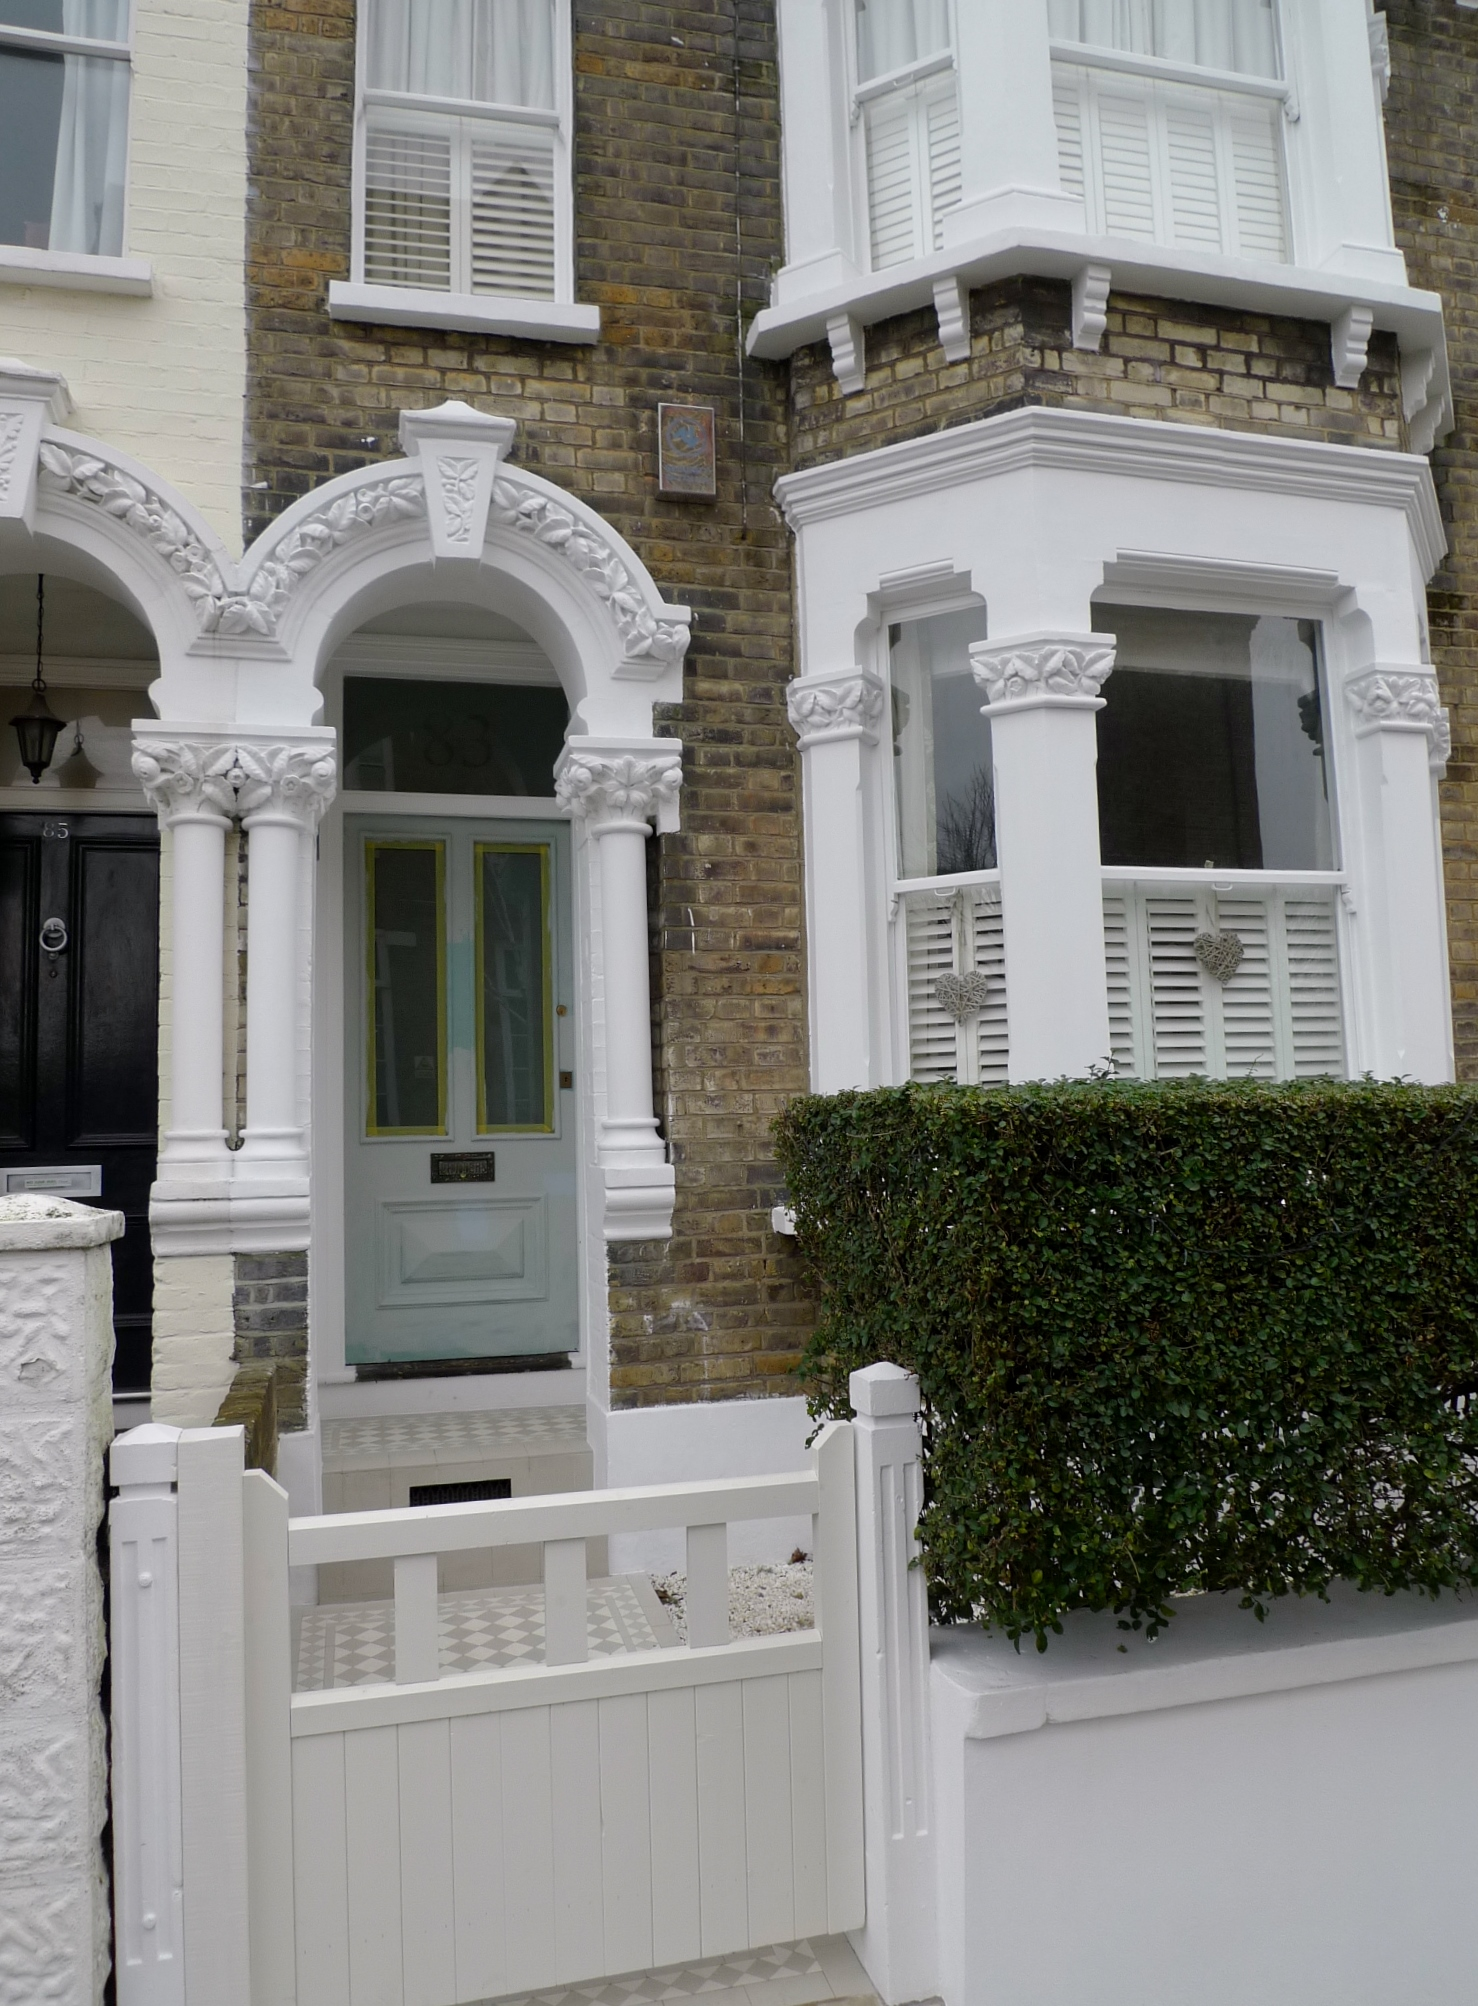 victroian front garden design off white colour scheme battersea london